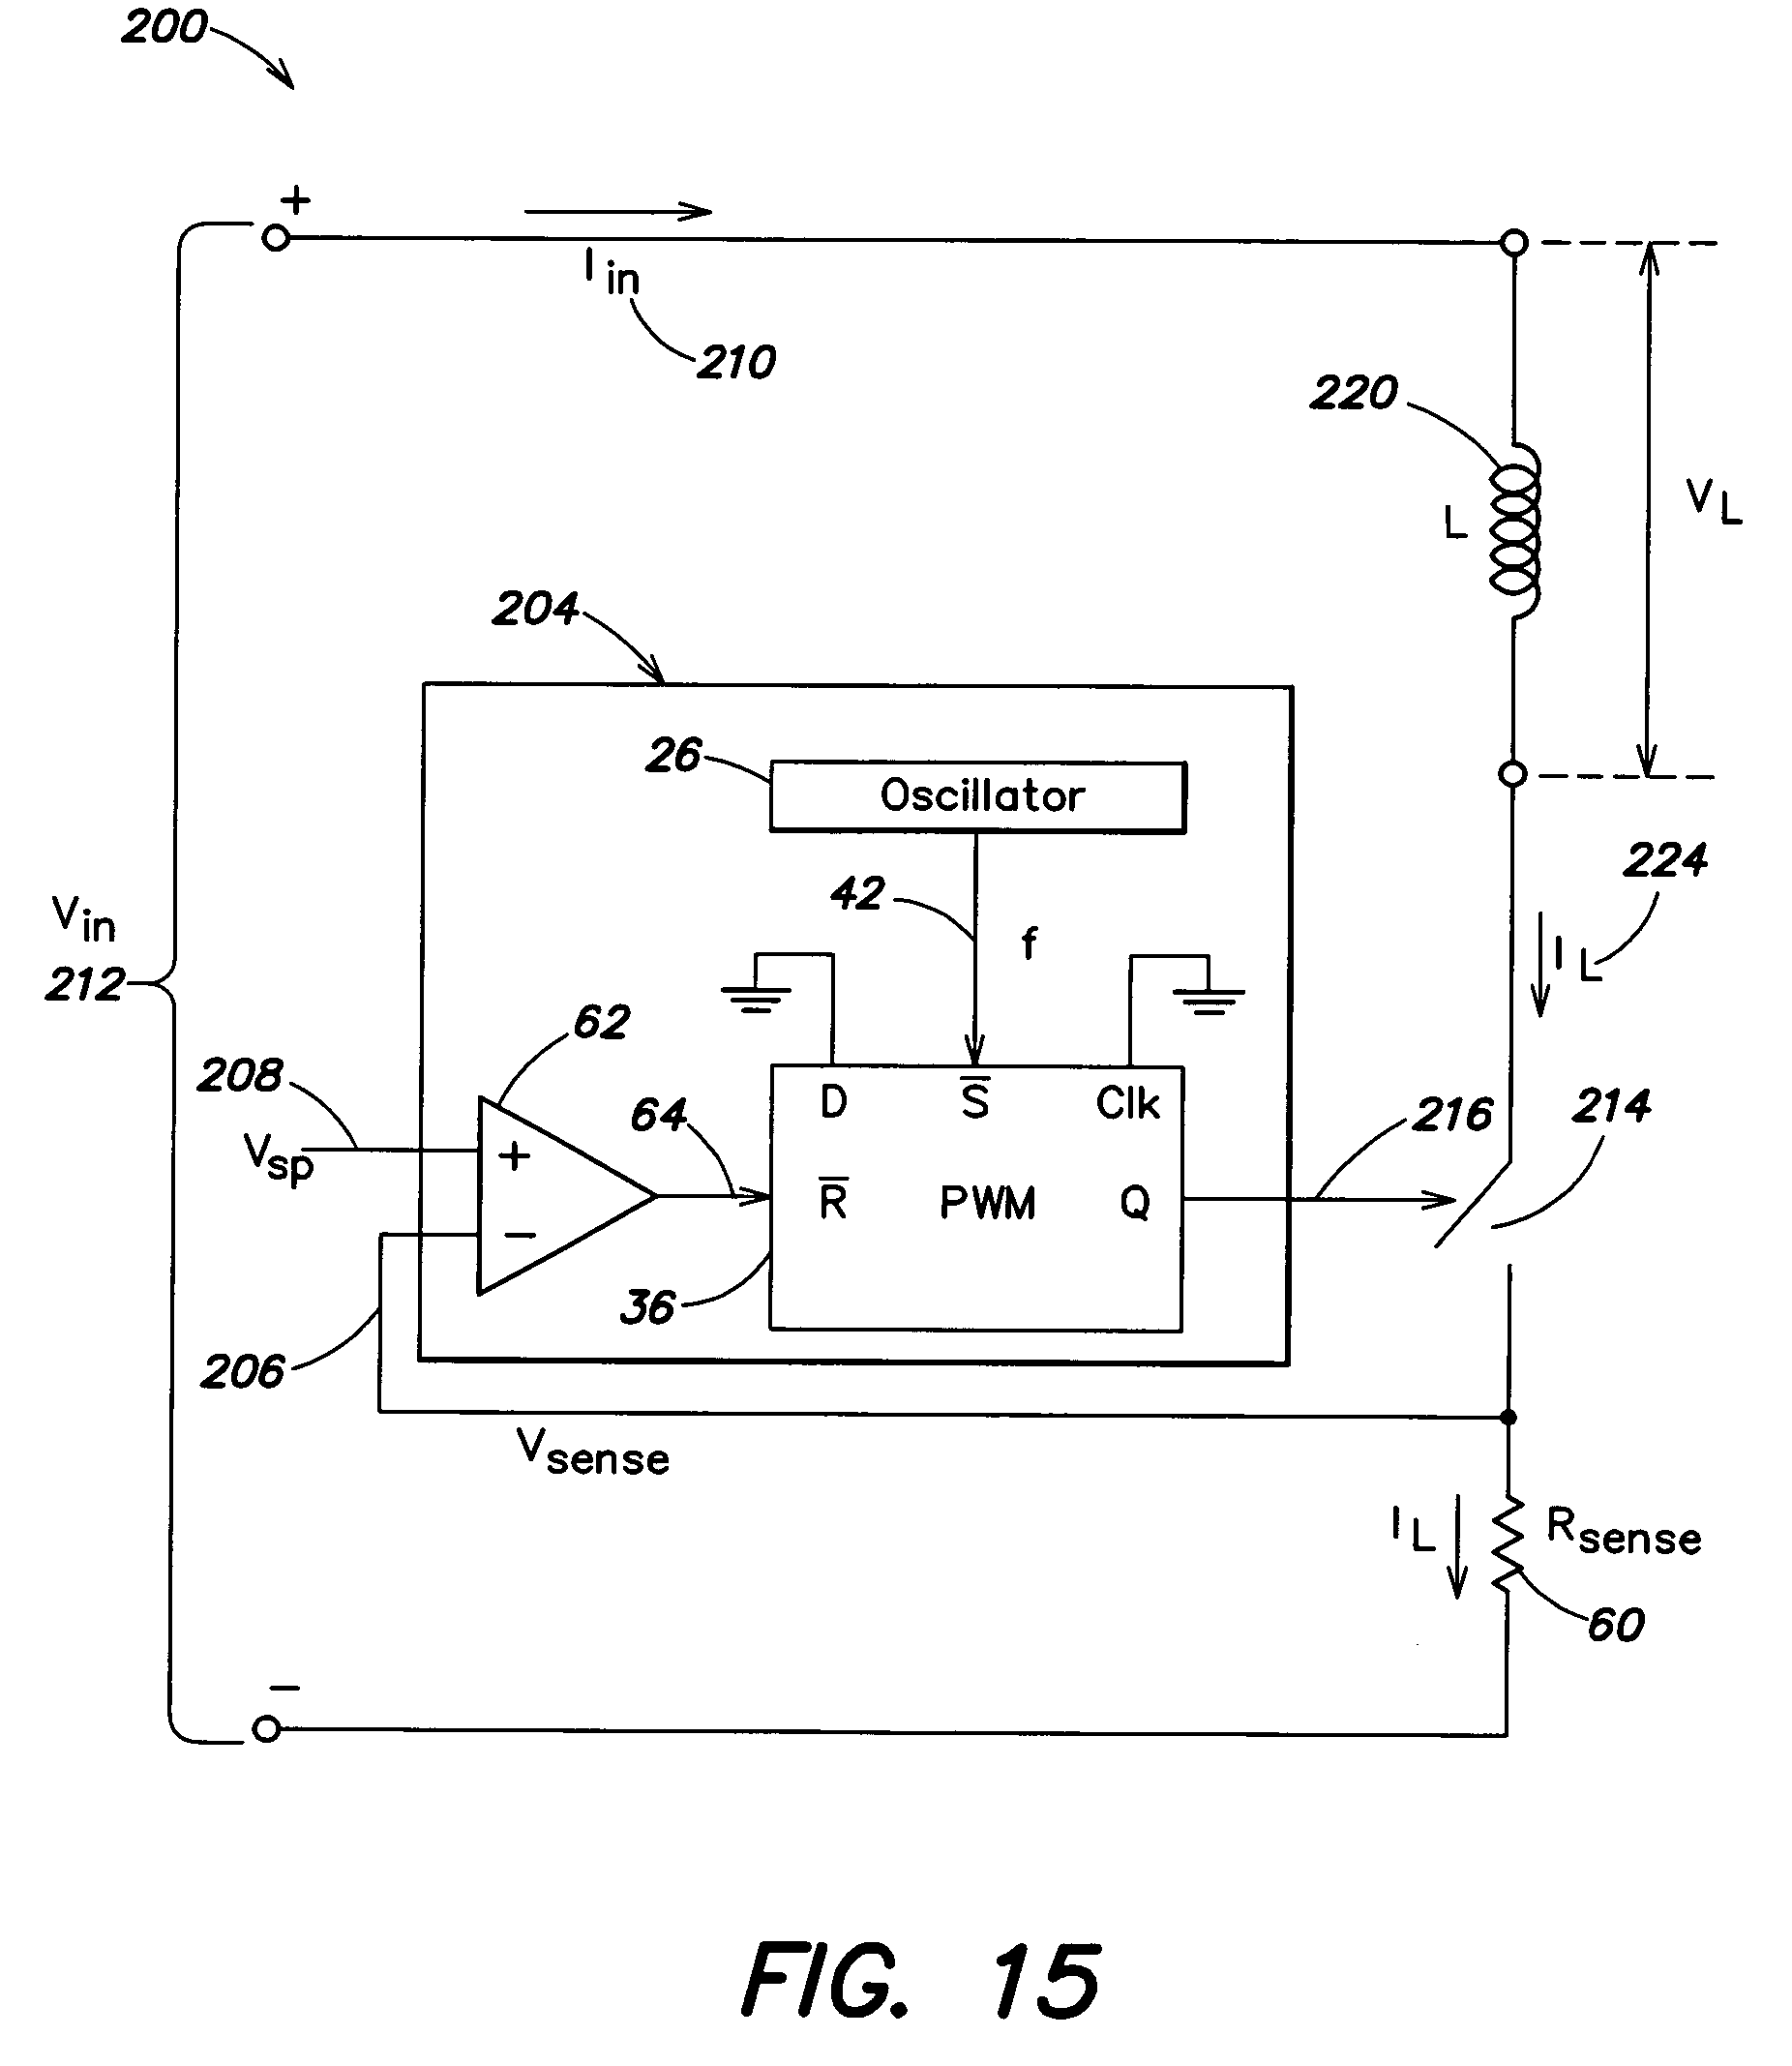 Patent Us 7256554 B2 Tube Rectifier Schematic In Addition Analog Pid Controller Circuit Images